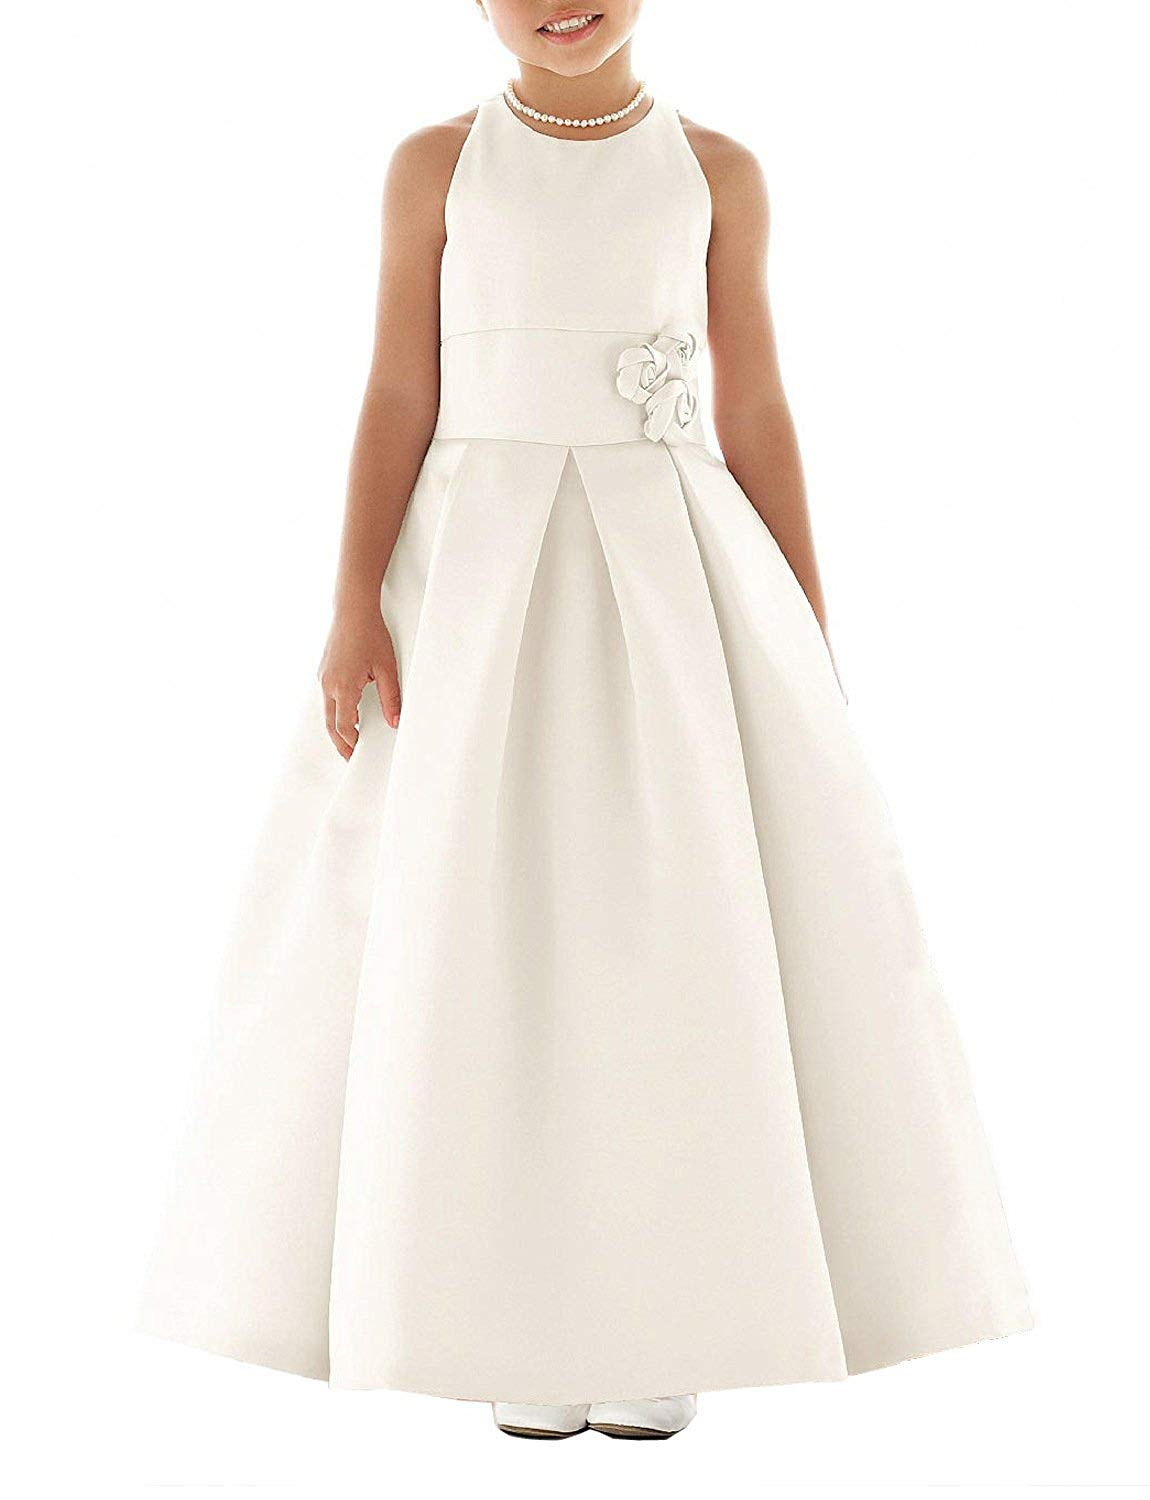 SlenyuBridal Girl's 2018 New Junior Bridesmaid Dress First Communion Wedding Flower Girl Dresses